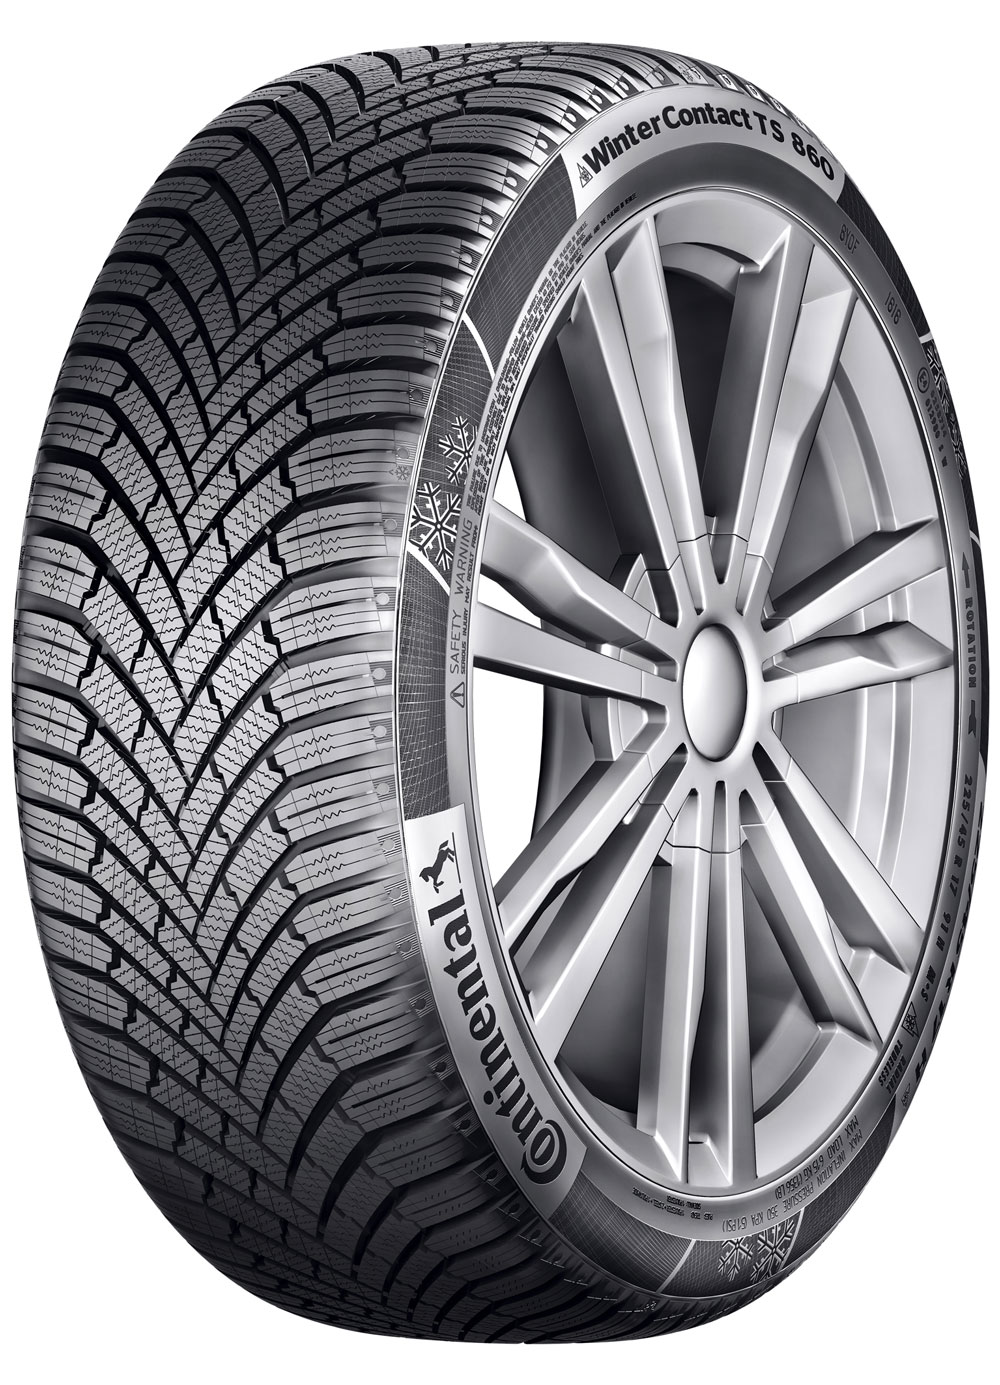 CONTINENTAL WINTER CONTACT TS860S 205/45R18 90H XL